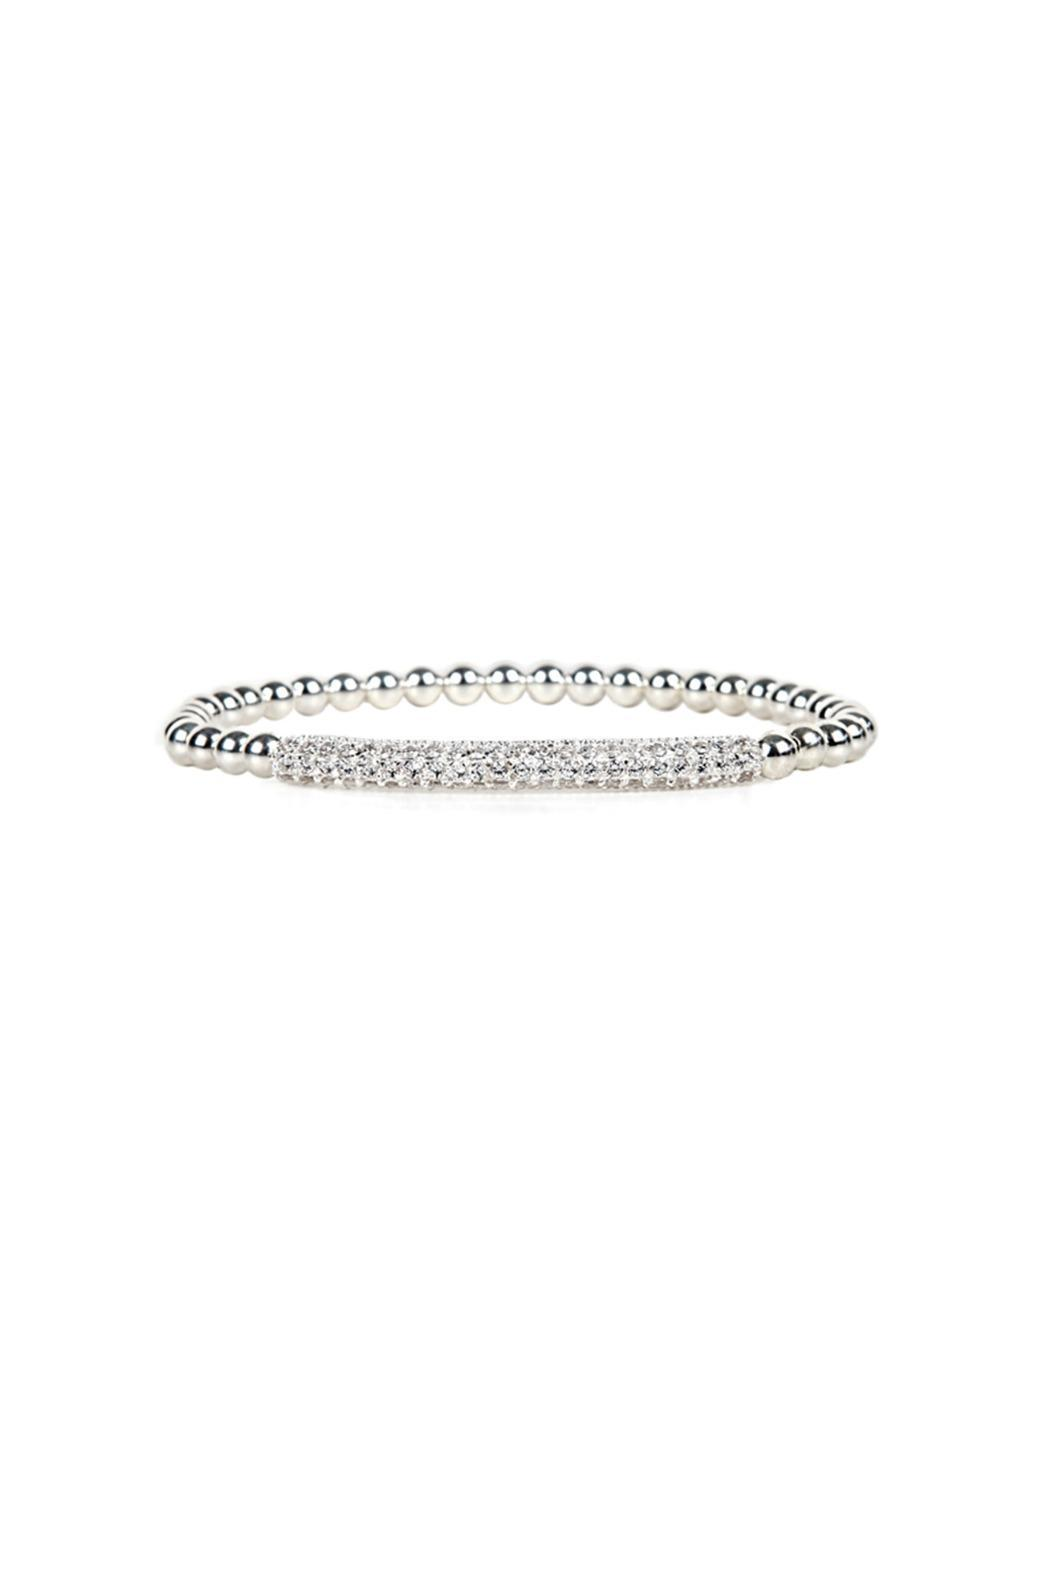 Jaimie Nicole Silver Pave Bar Bracelet - Front Cropped Image